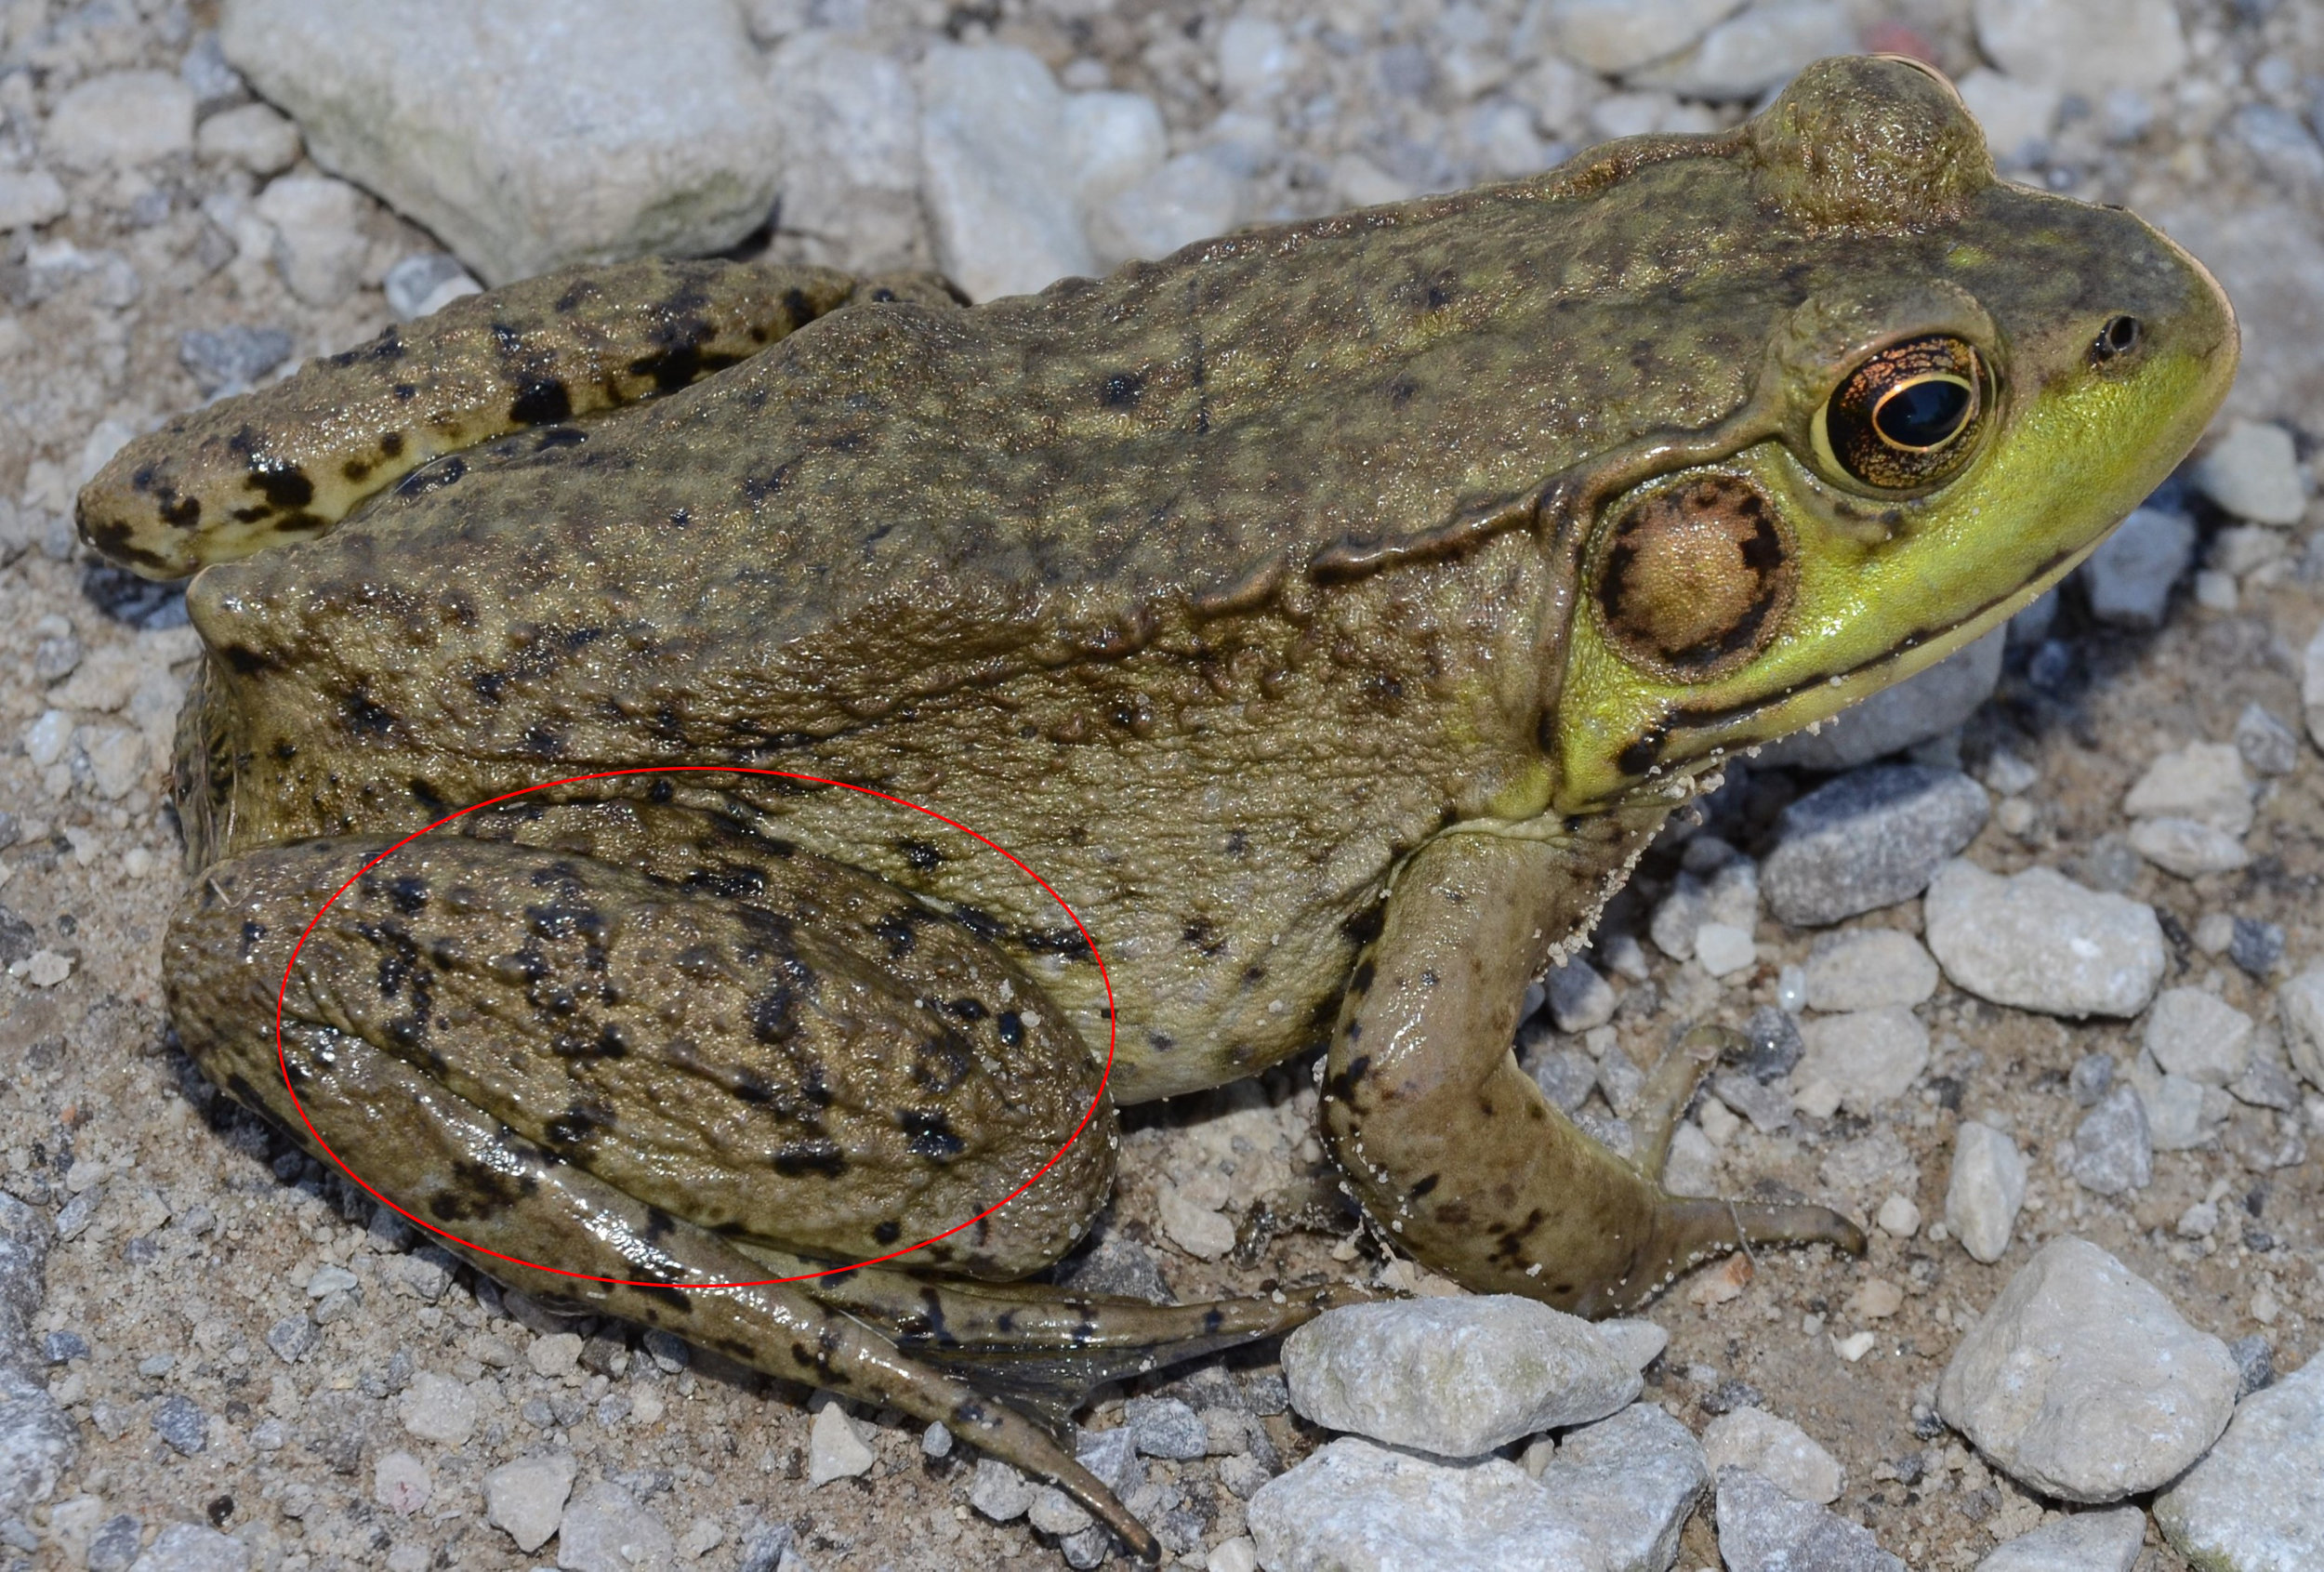 Figure 2.  Green frog ( Lithobates clamitans ) with striping on high leg. Photo courtesy of Mark Nenadov, Wikimedia Commons.